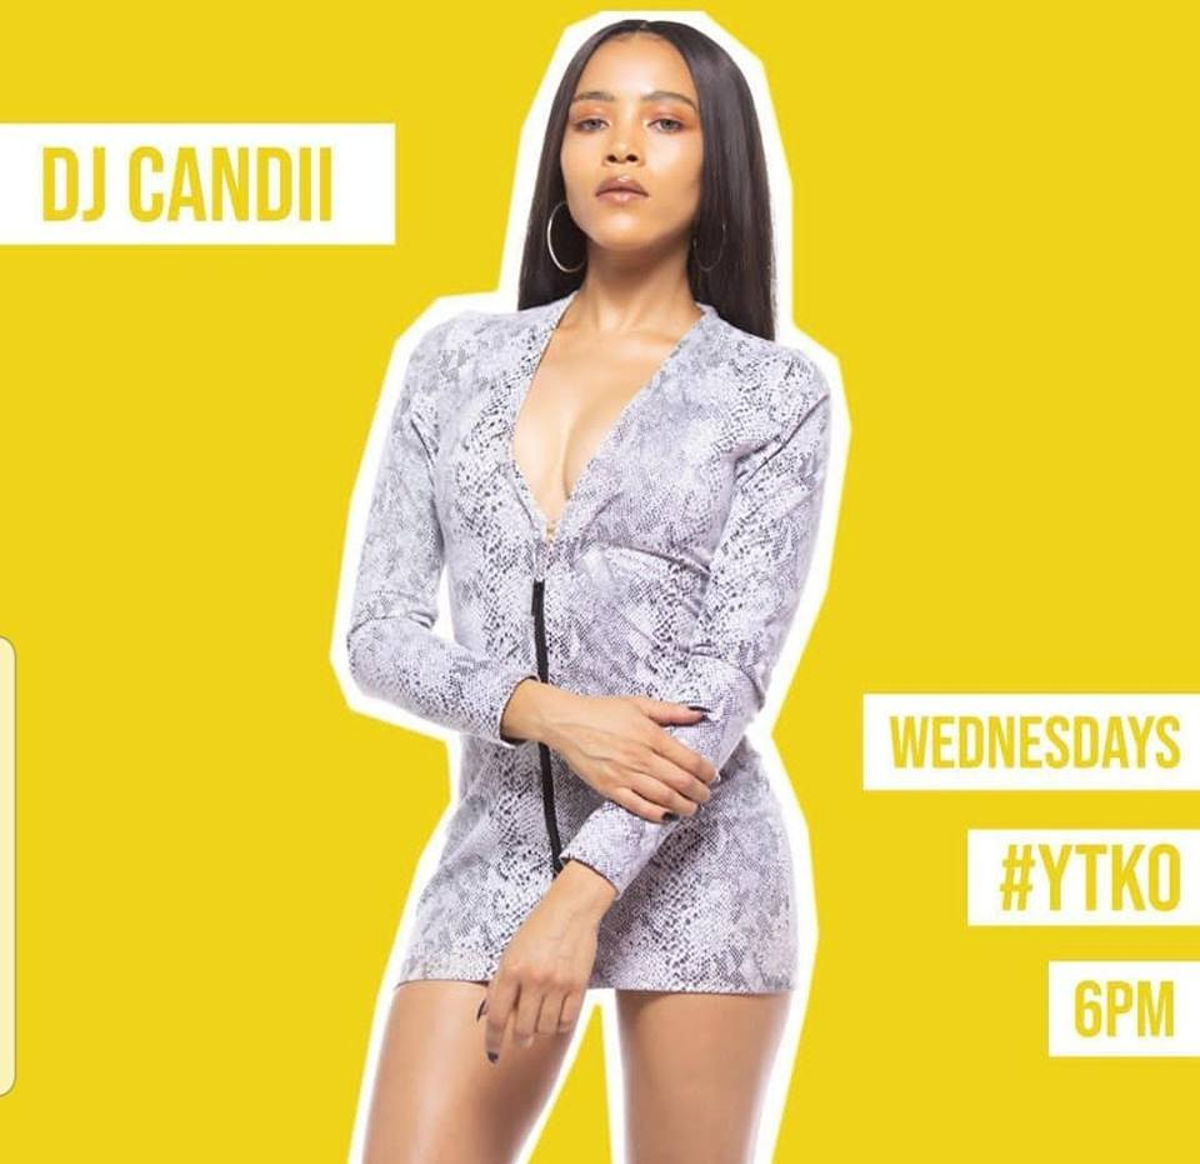 Dj Candii - YFM YTKO Gqomnificent Mix (2019.05.22)